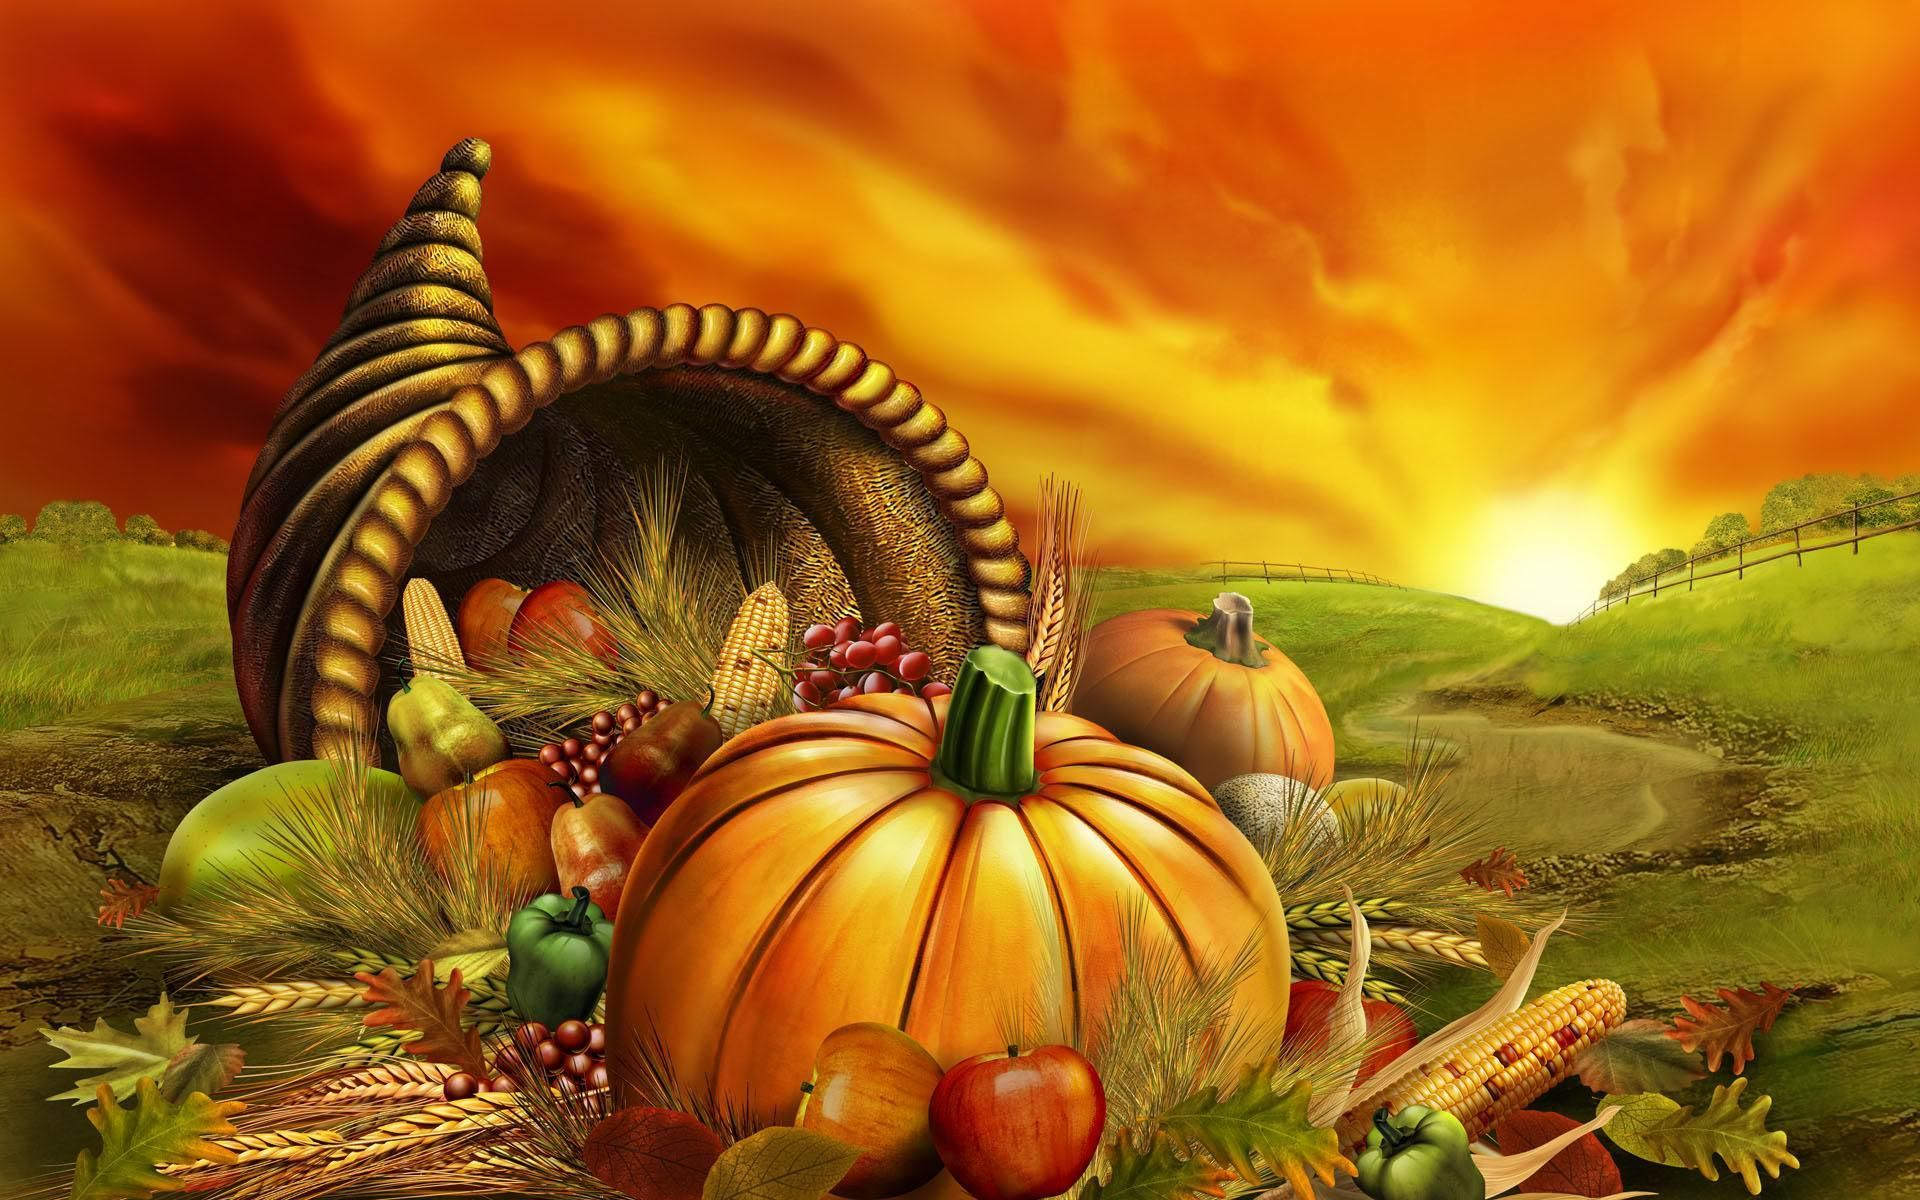 40 Free Thanksgiving Background Wallpapers For Desktop Thanksgiving Pictures Thanksgiving Wallpaper Thanksgiving Wishes